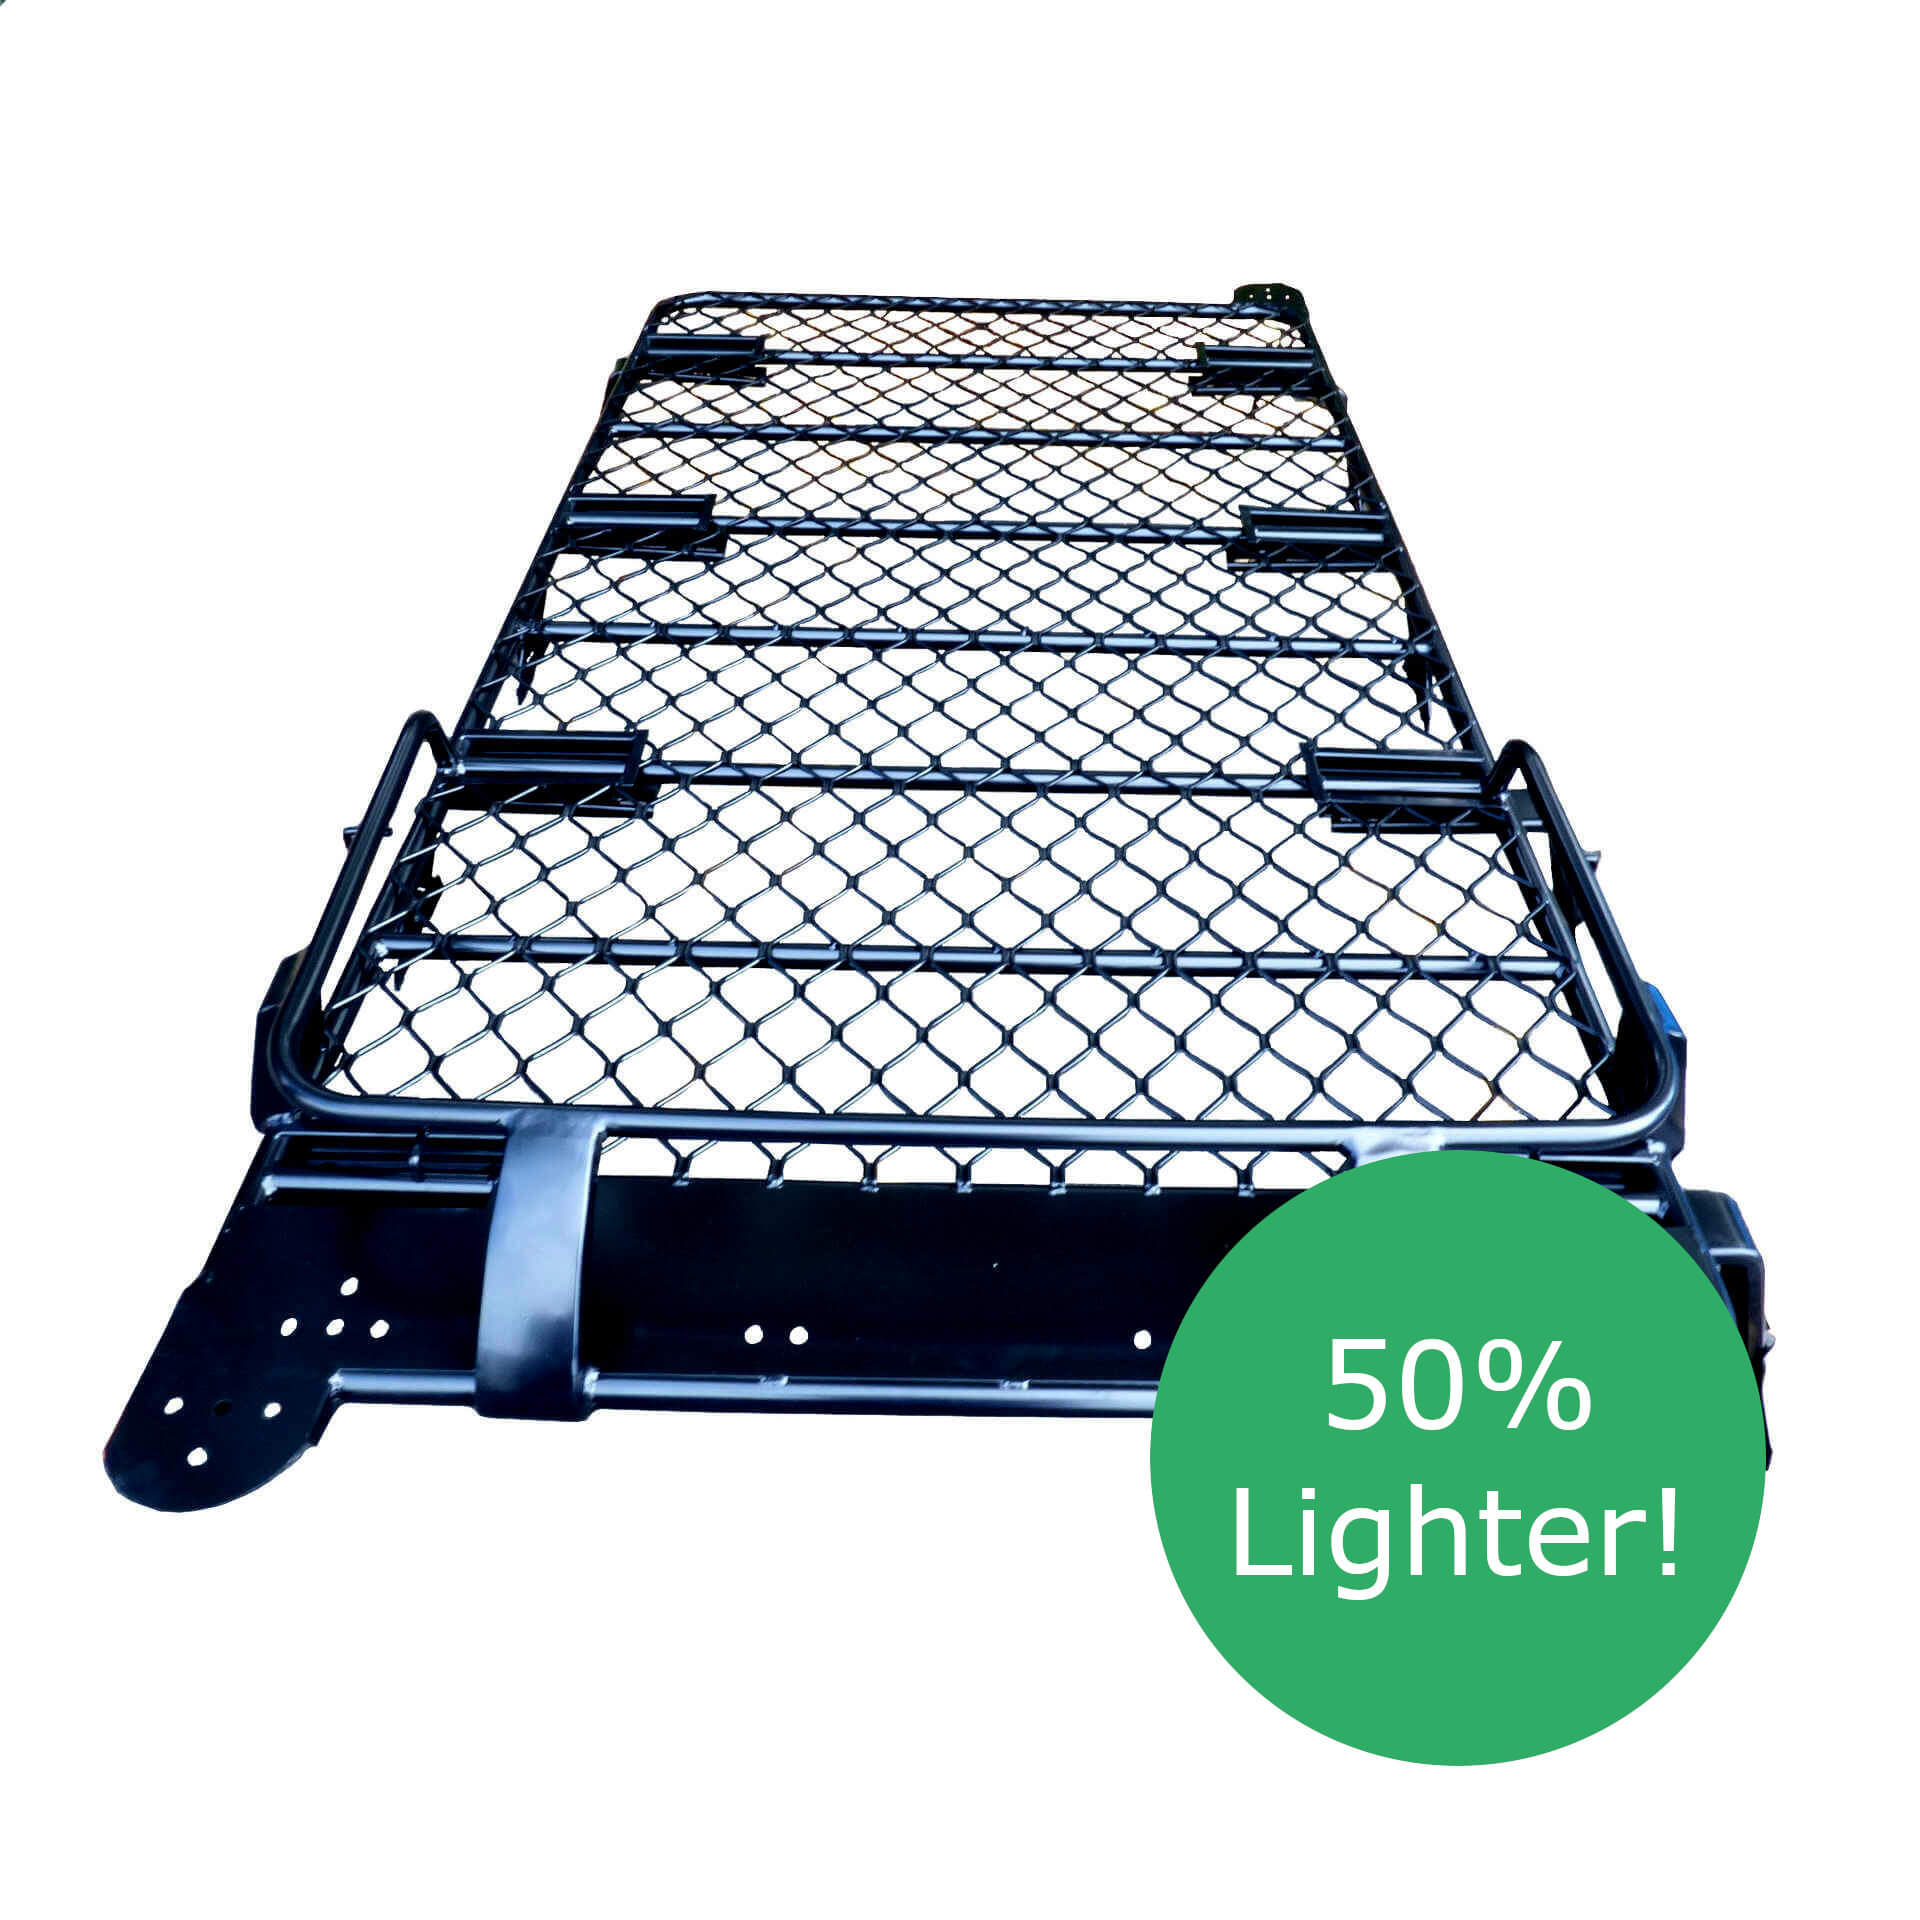 Direct4x4 Accessories UK - Aluminium front basket expedition roof rack